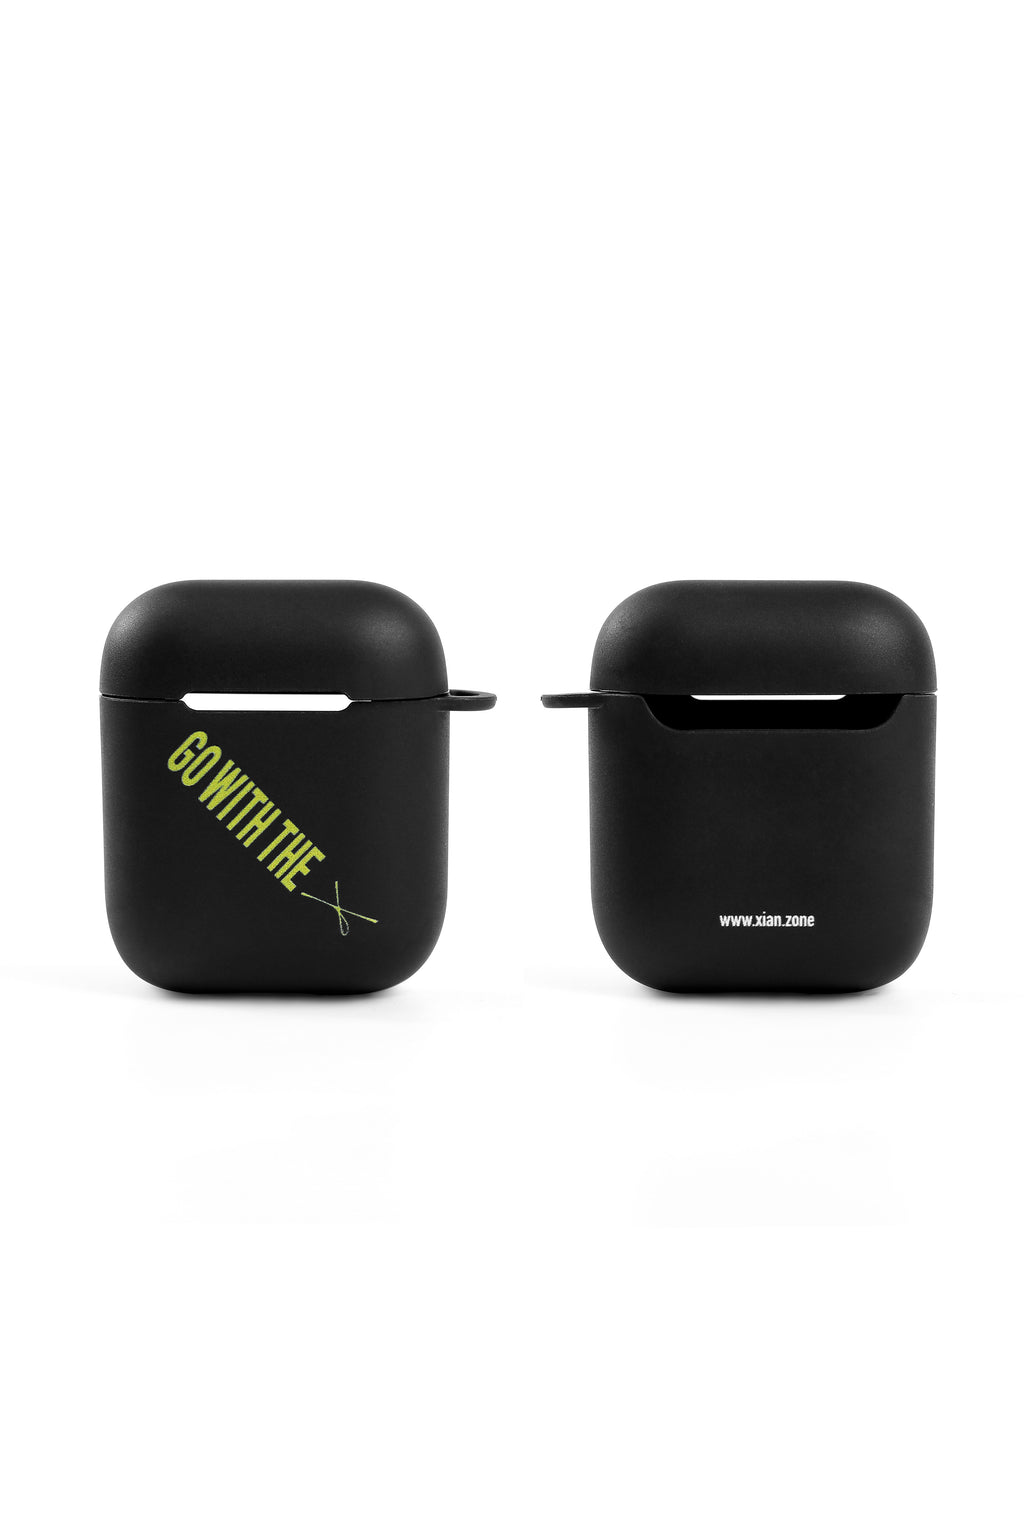 GWTX AirPods Case